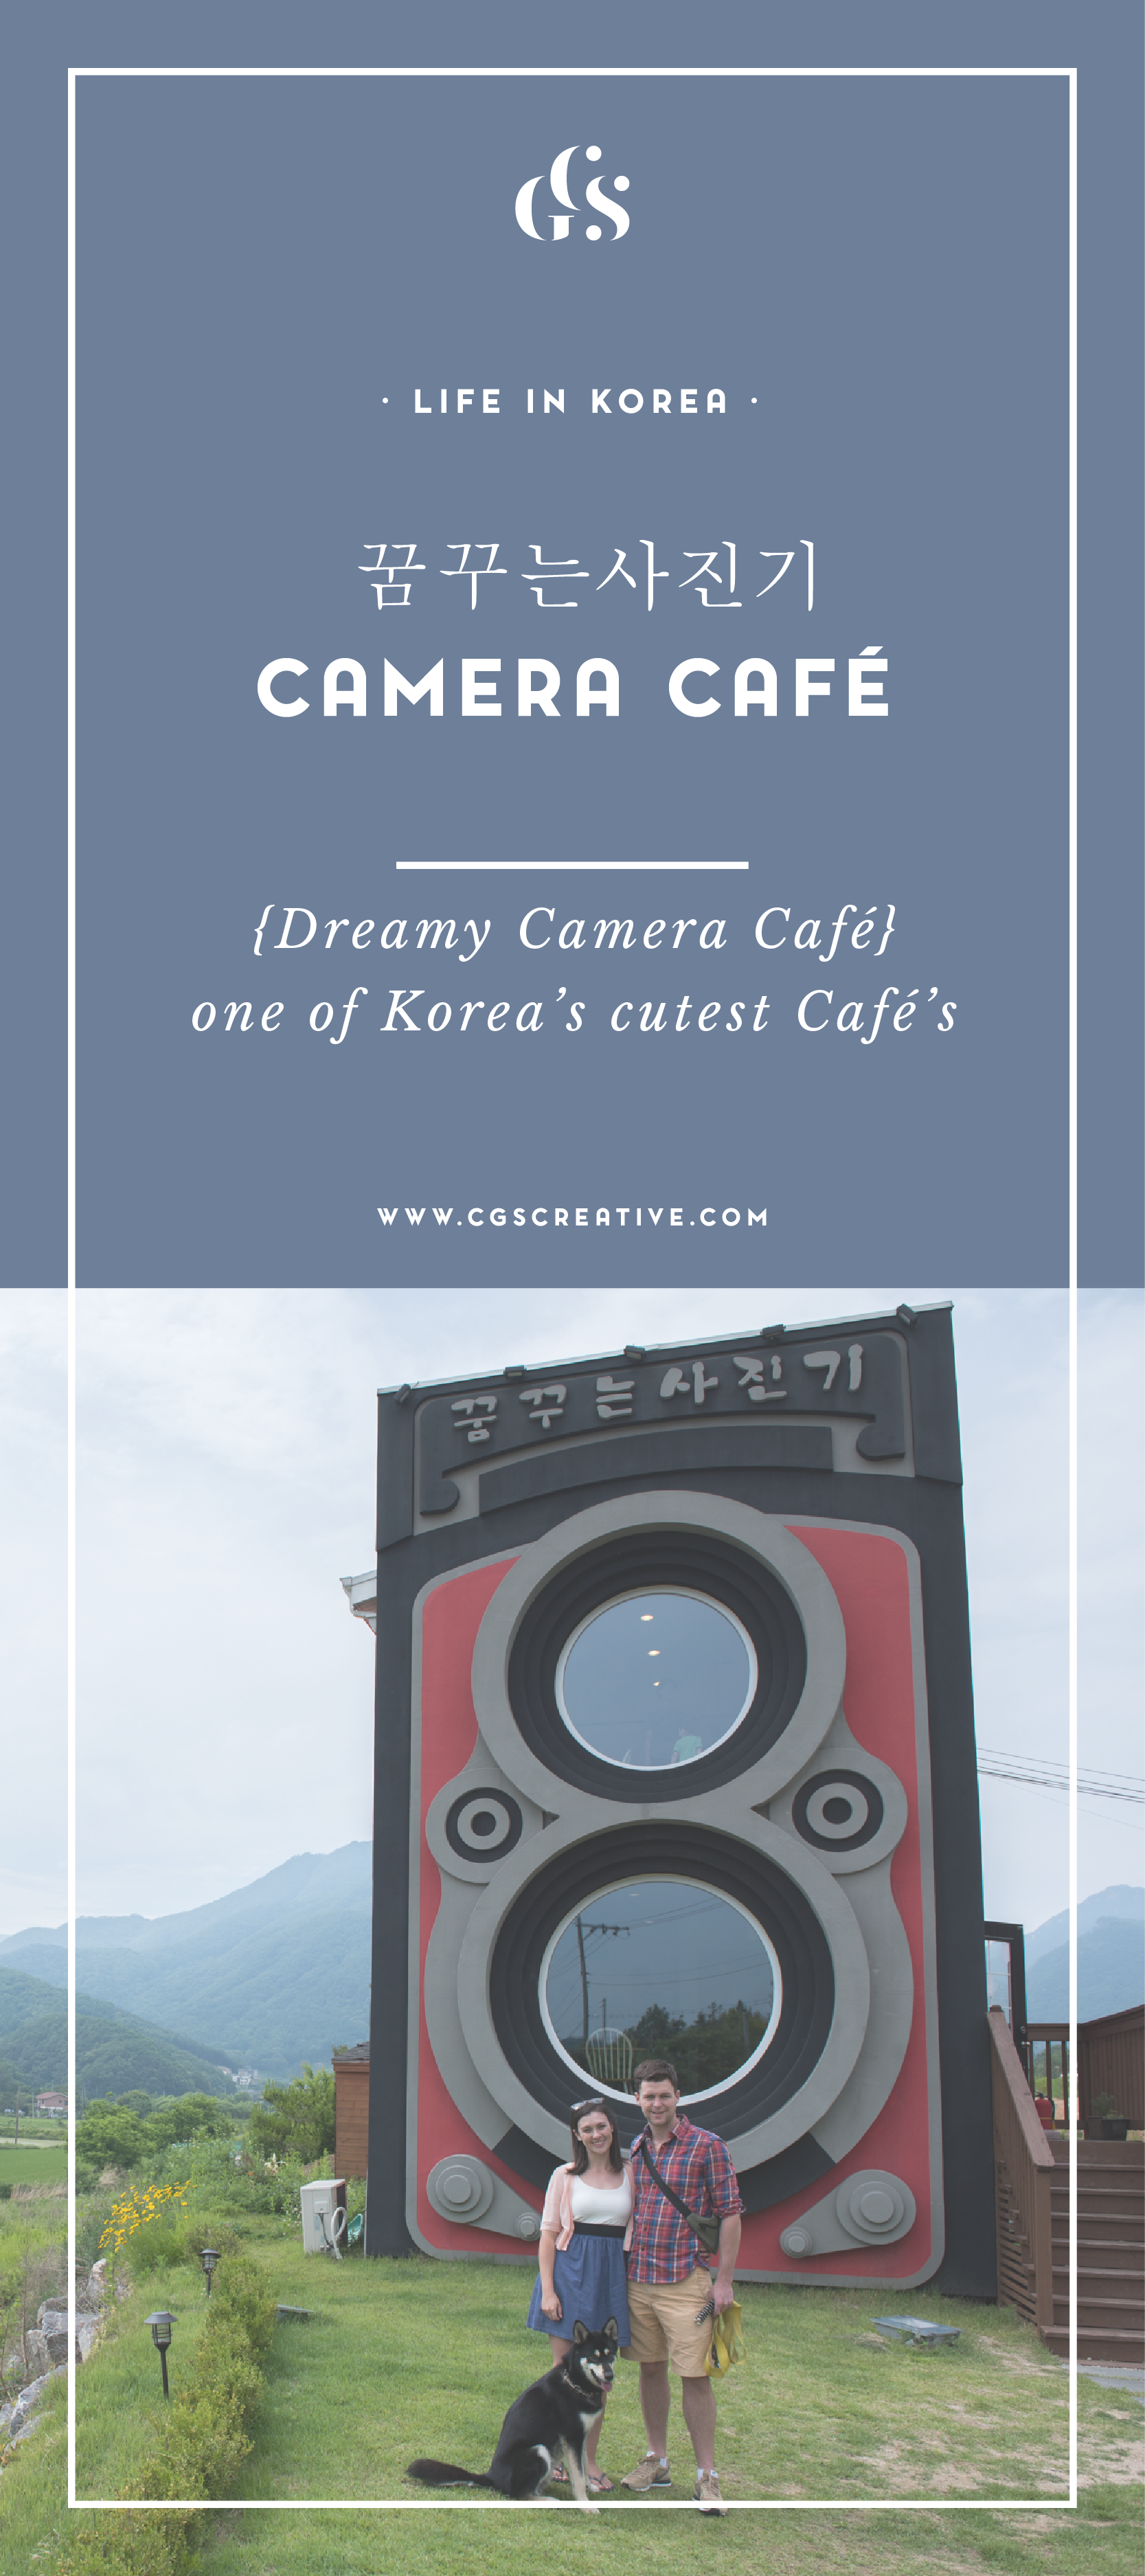 Dreamy Camera Cafe in Seoul South Korea Cute Korean Coffee Shop_Artboard 3.png